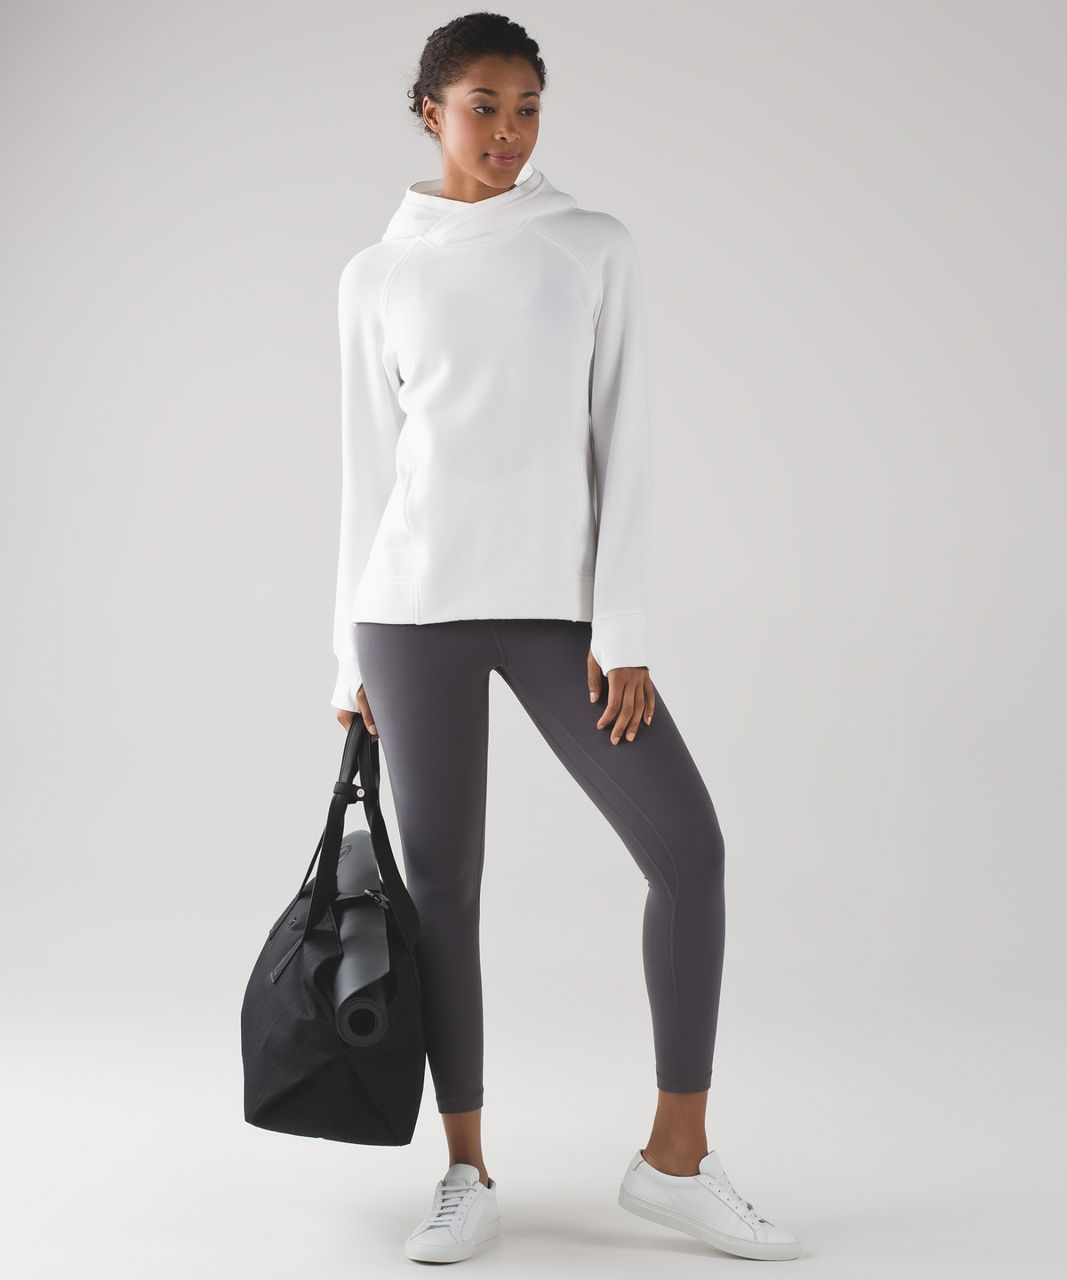 Lululemon Fleece Please pullover | When life hands you lemons ...